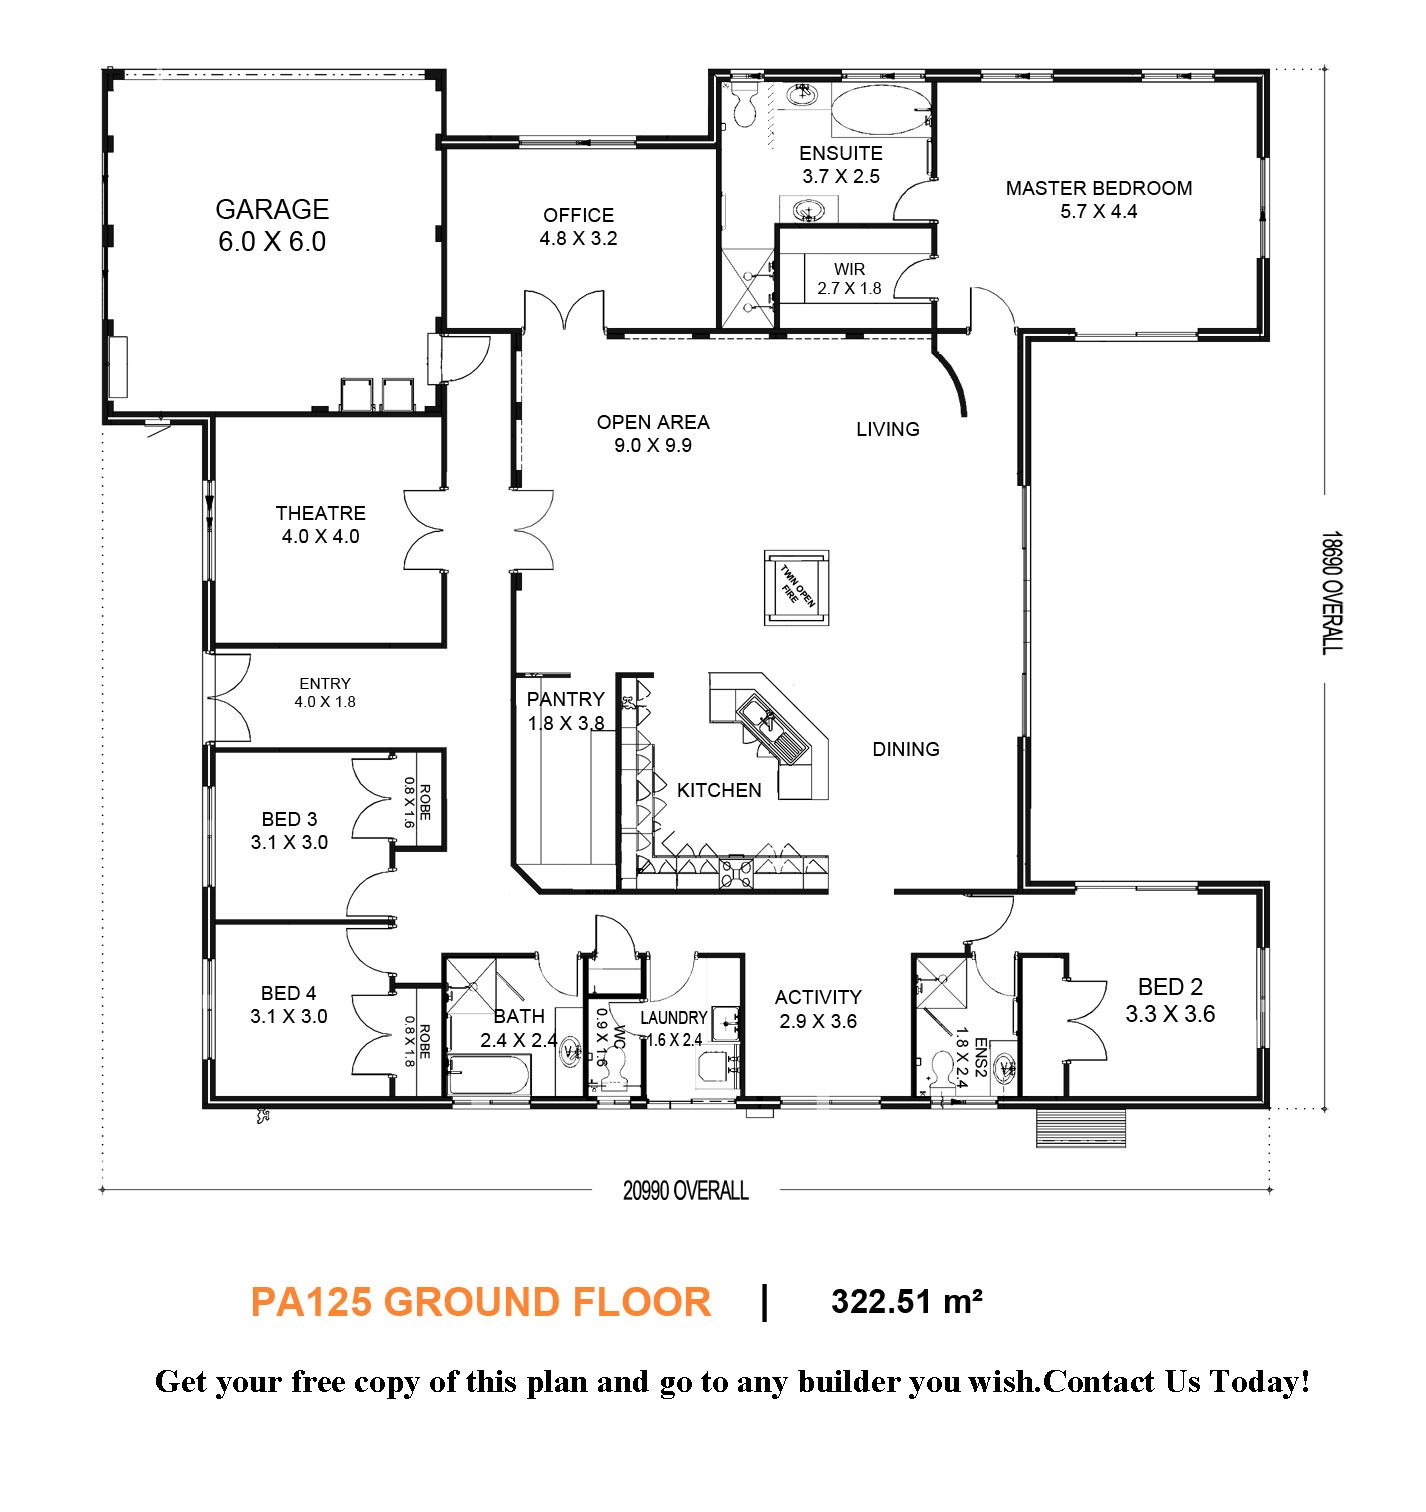 dd387c537fa0e9e0ff3b1bea2fccdcce U Shaped House Plans With In Law Suite on container built home floor plans, in law cottage house plans, small apartment design plans, mother law suites house plans, detached mother in-law suite plans, shipping container home floor plans, with in law quarters house plan, cargo container homes floor plans, federal style home floor plans, in law unit house plans, home addition plans,